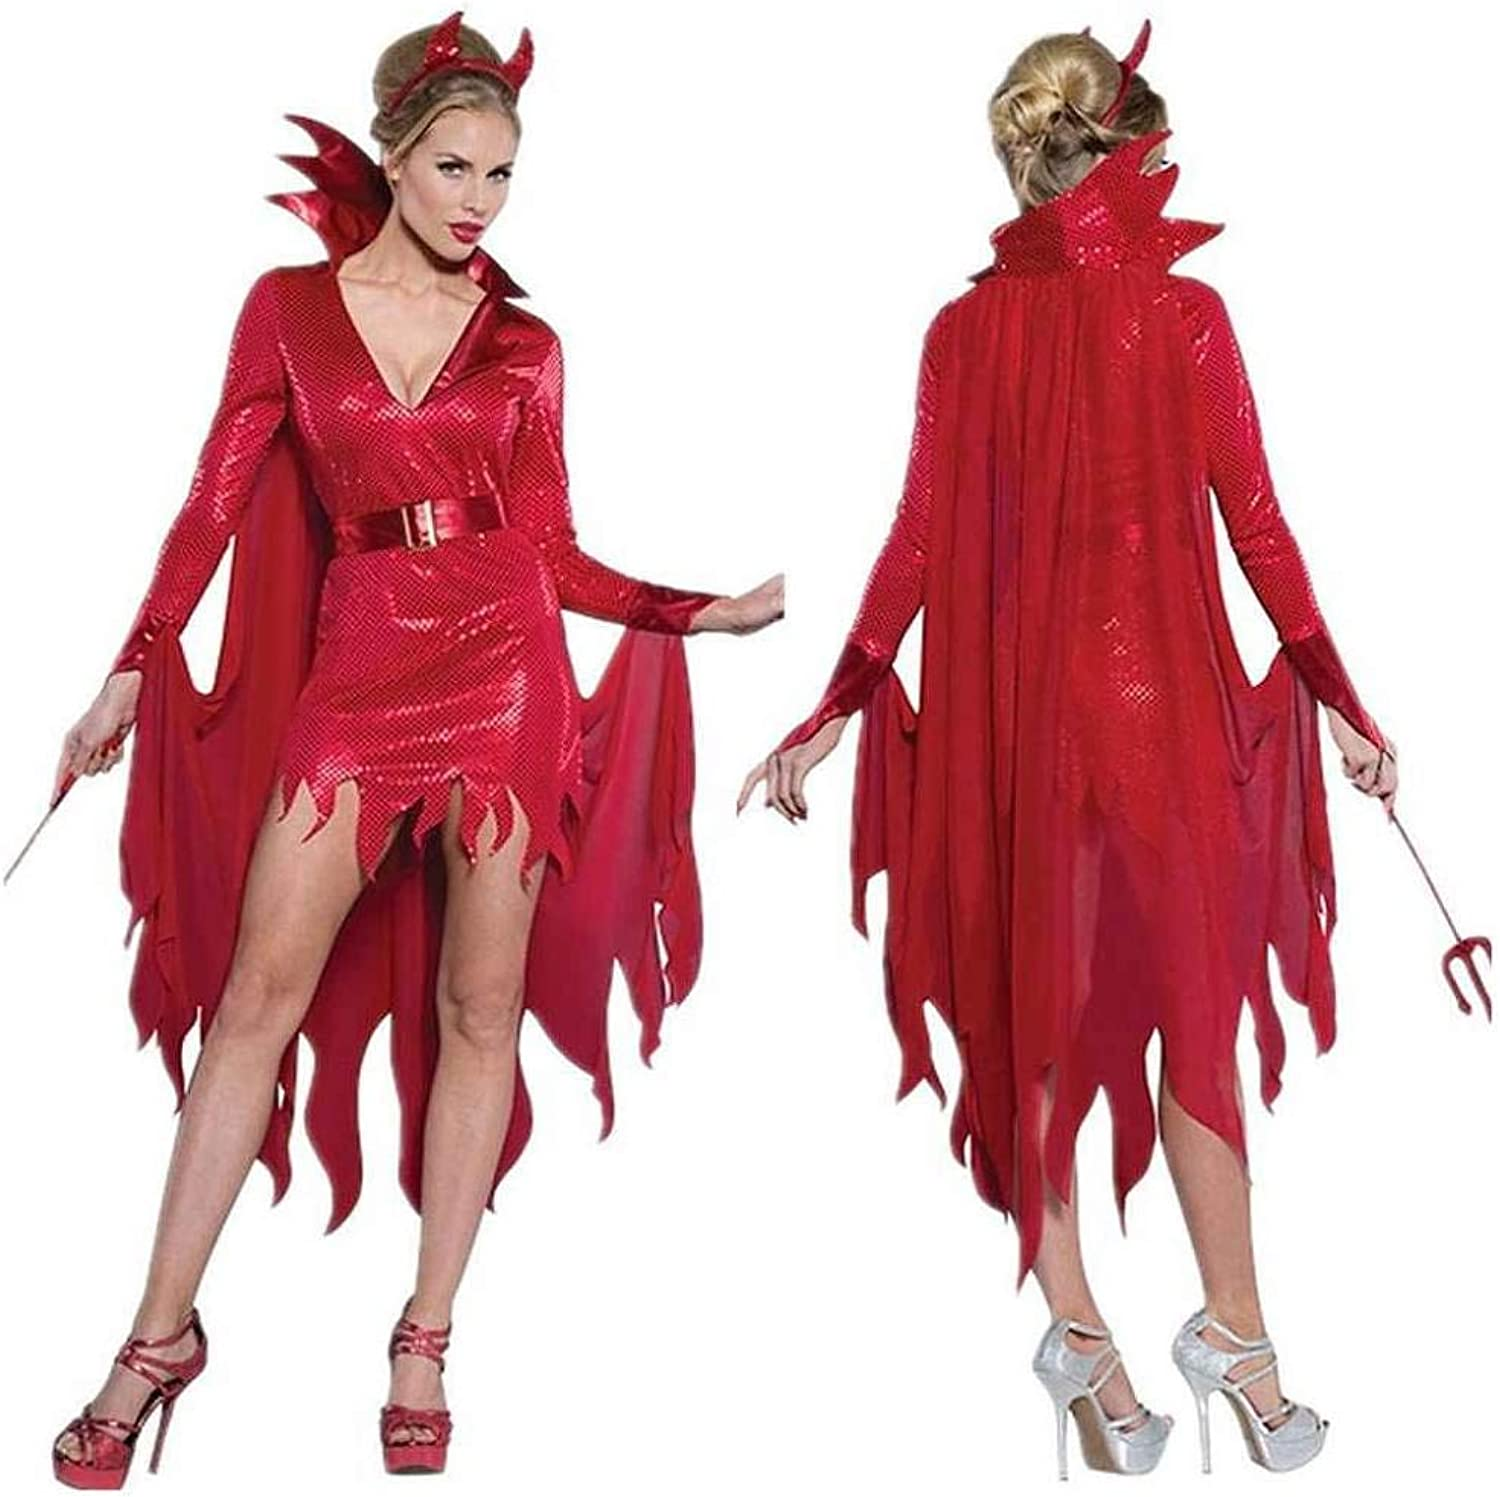 KAIDILA Halloween Red Devil Costume Adult Cosplay Horn Witch Witch Role Play Stage Outfit